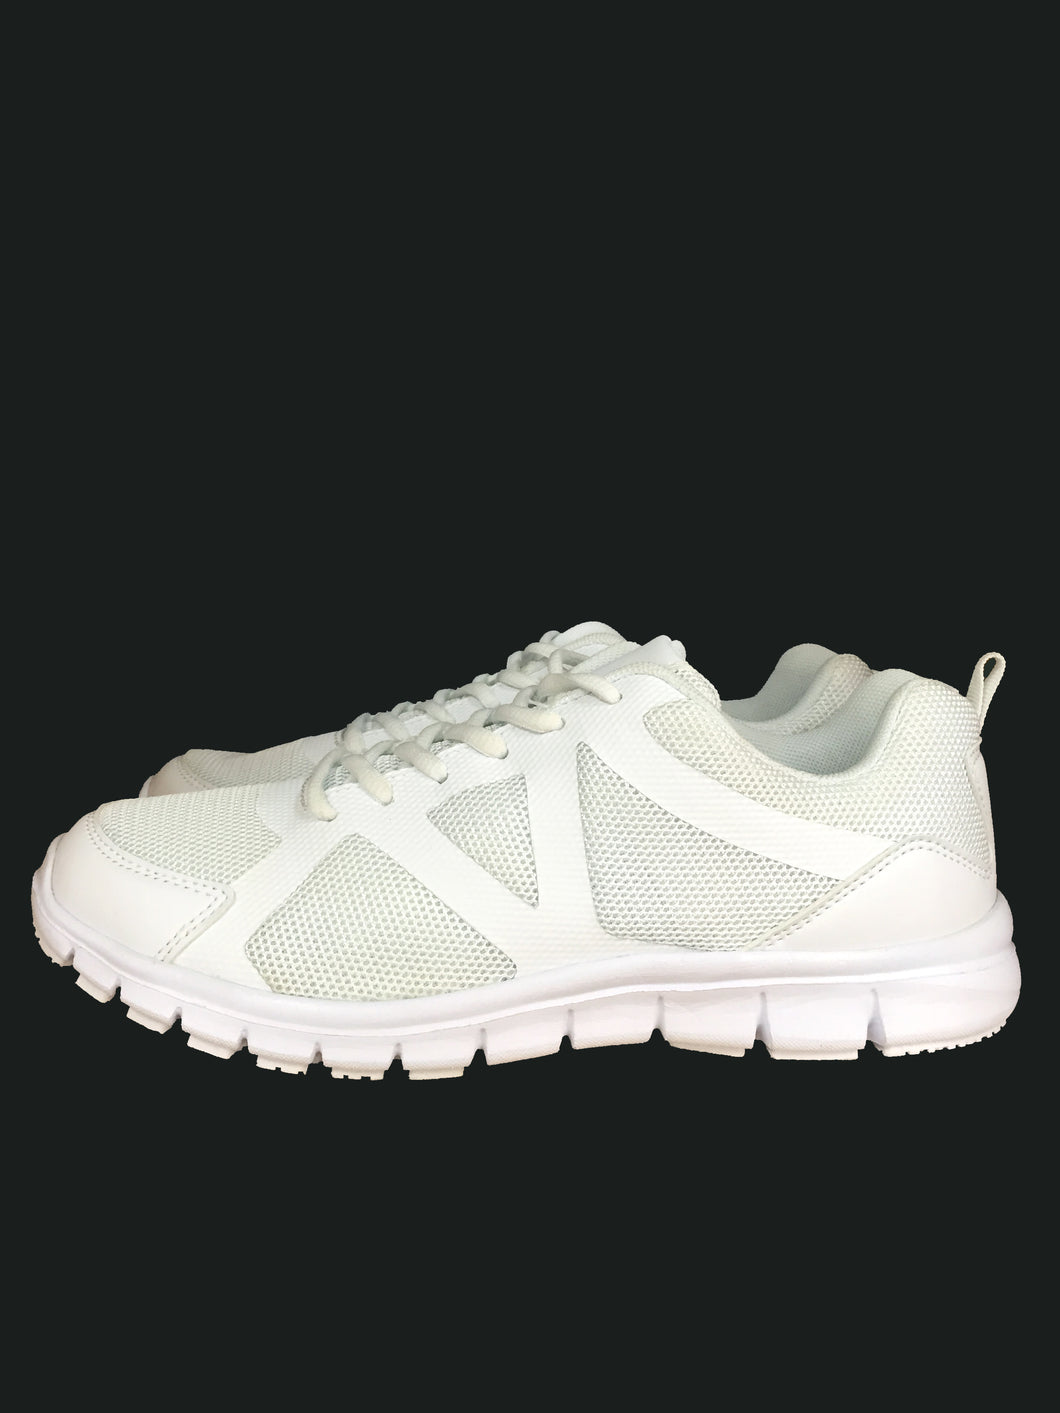 White Shoes -  Lace ($28 N)